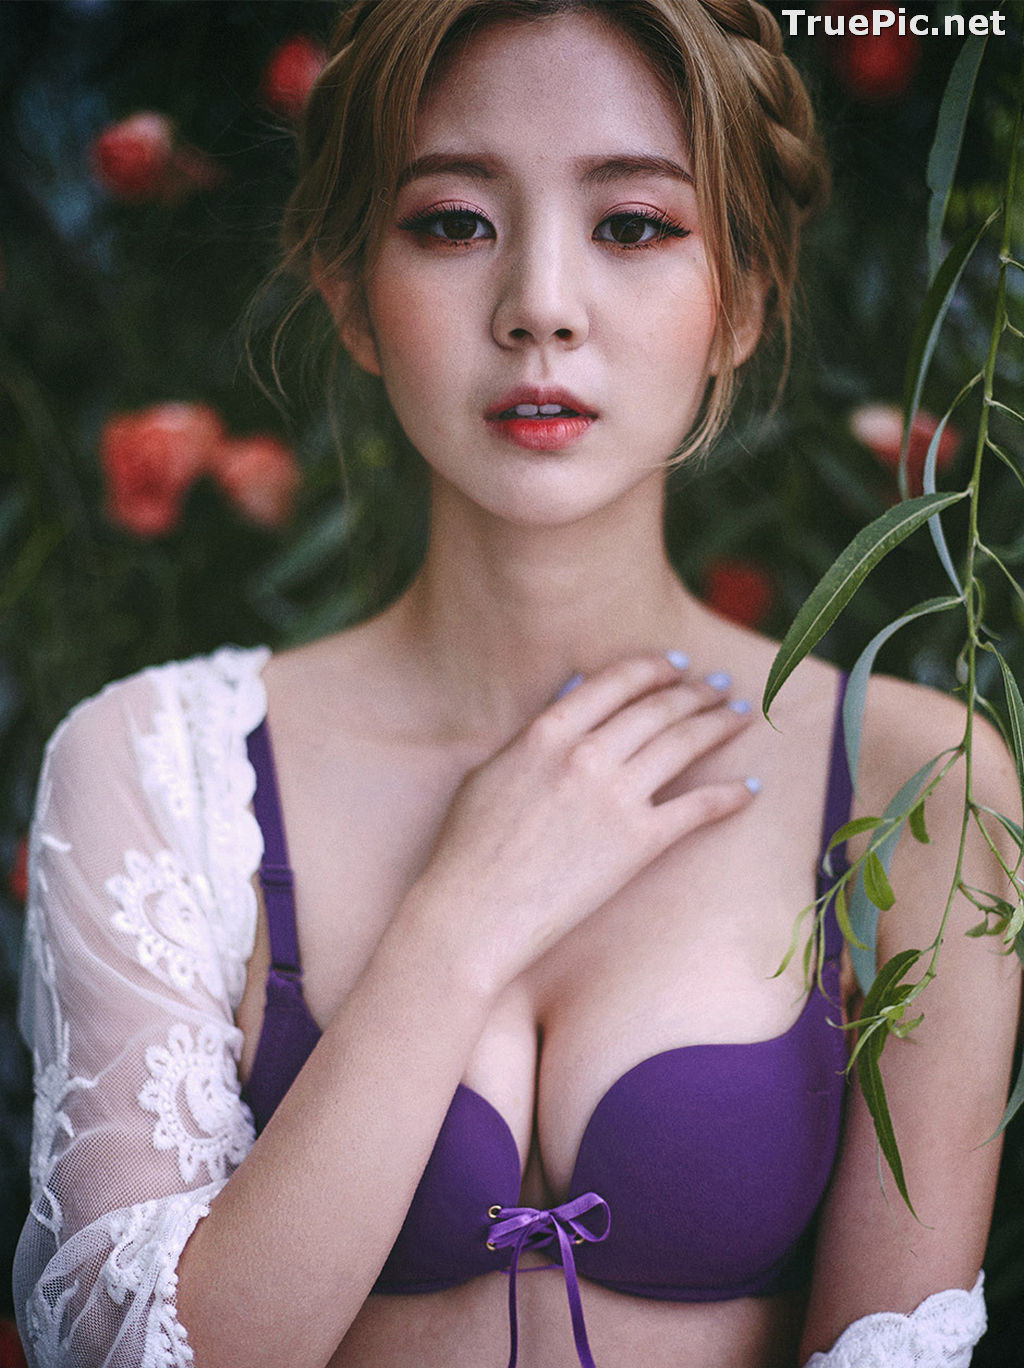 Image Lee Chae Eun - Korean Fashion Model - Purple Lingerie Set - TruePic.net - Picture-10